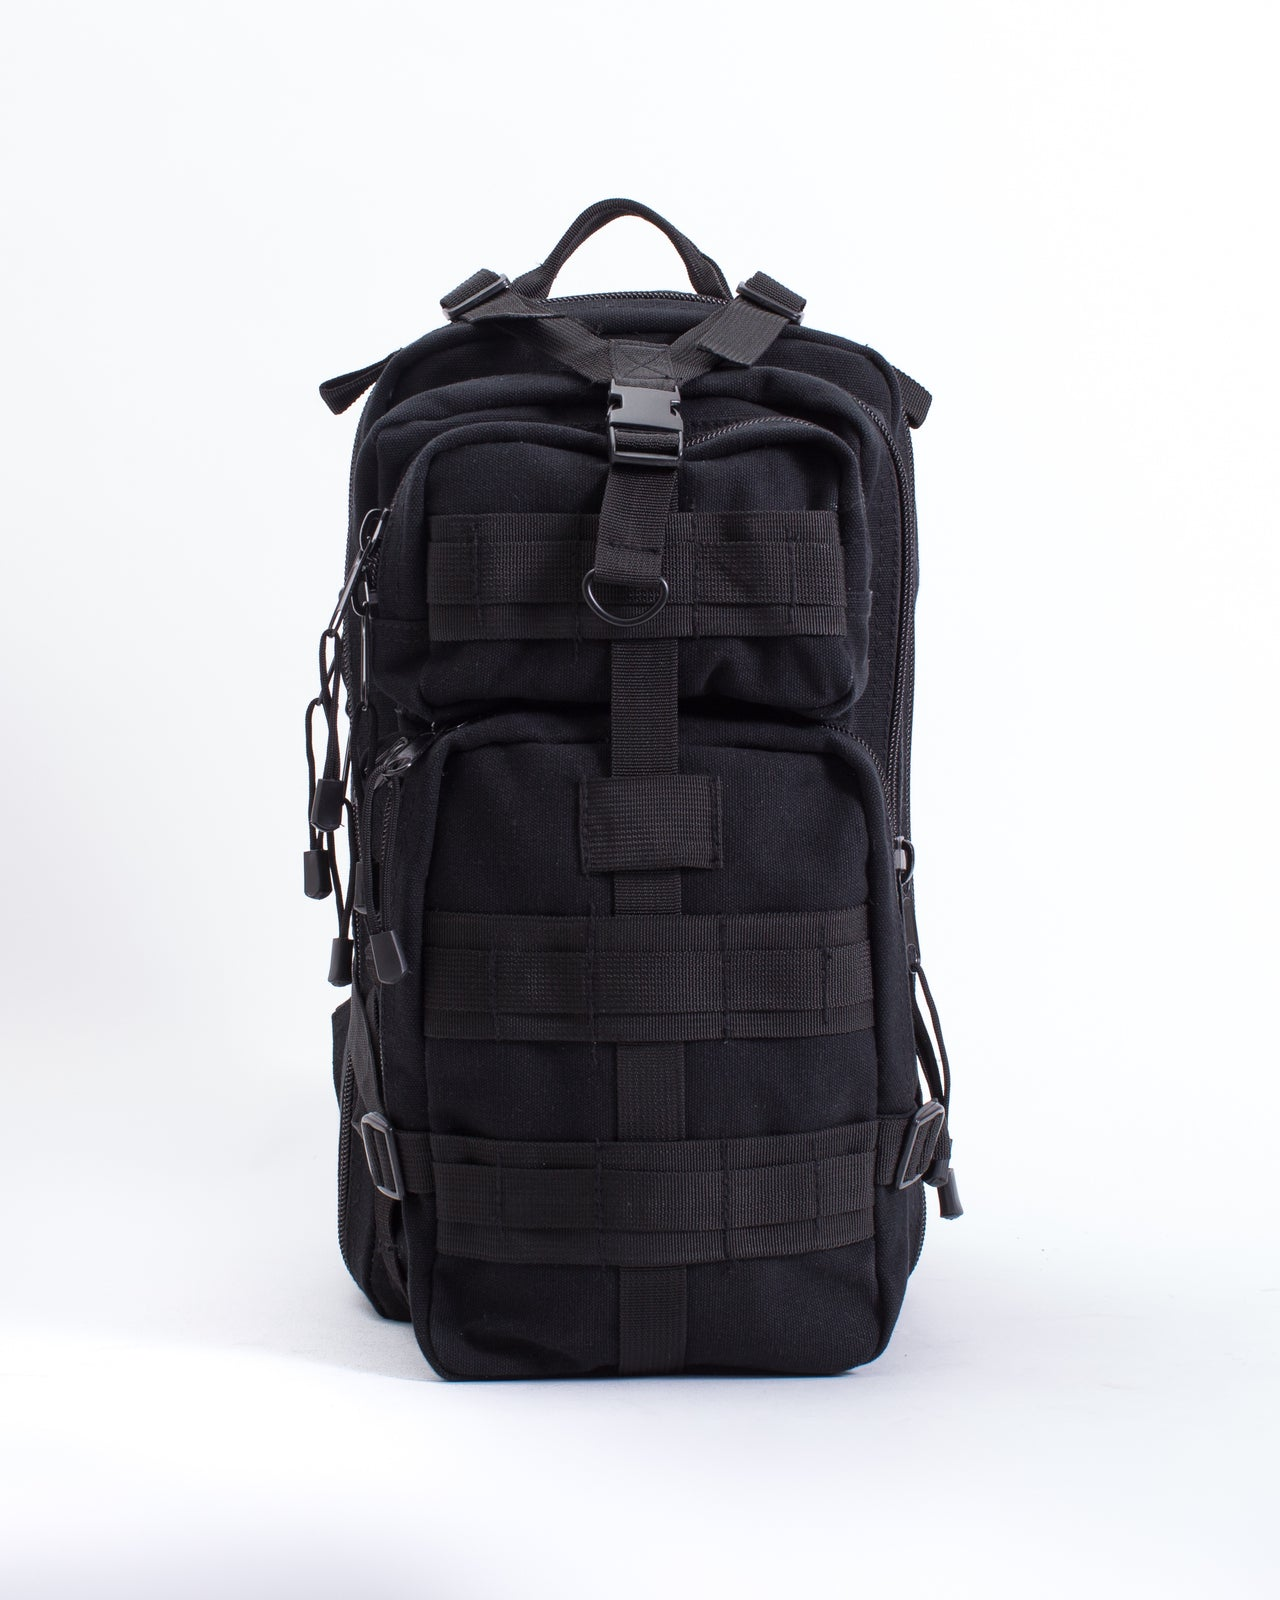 Tacticanvas Go Backpack - Color: Black | Black